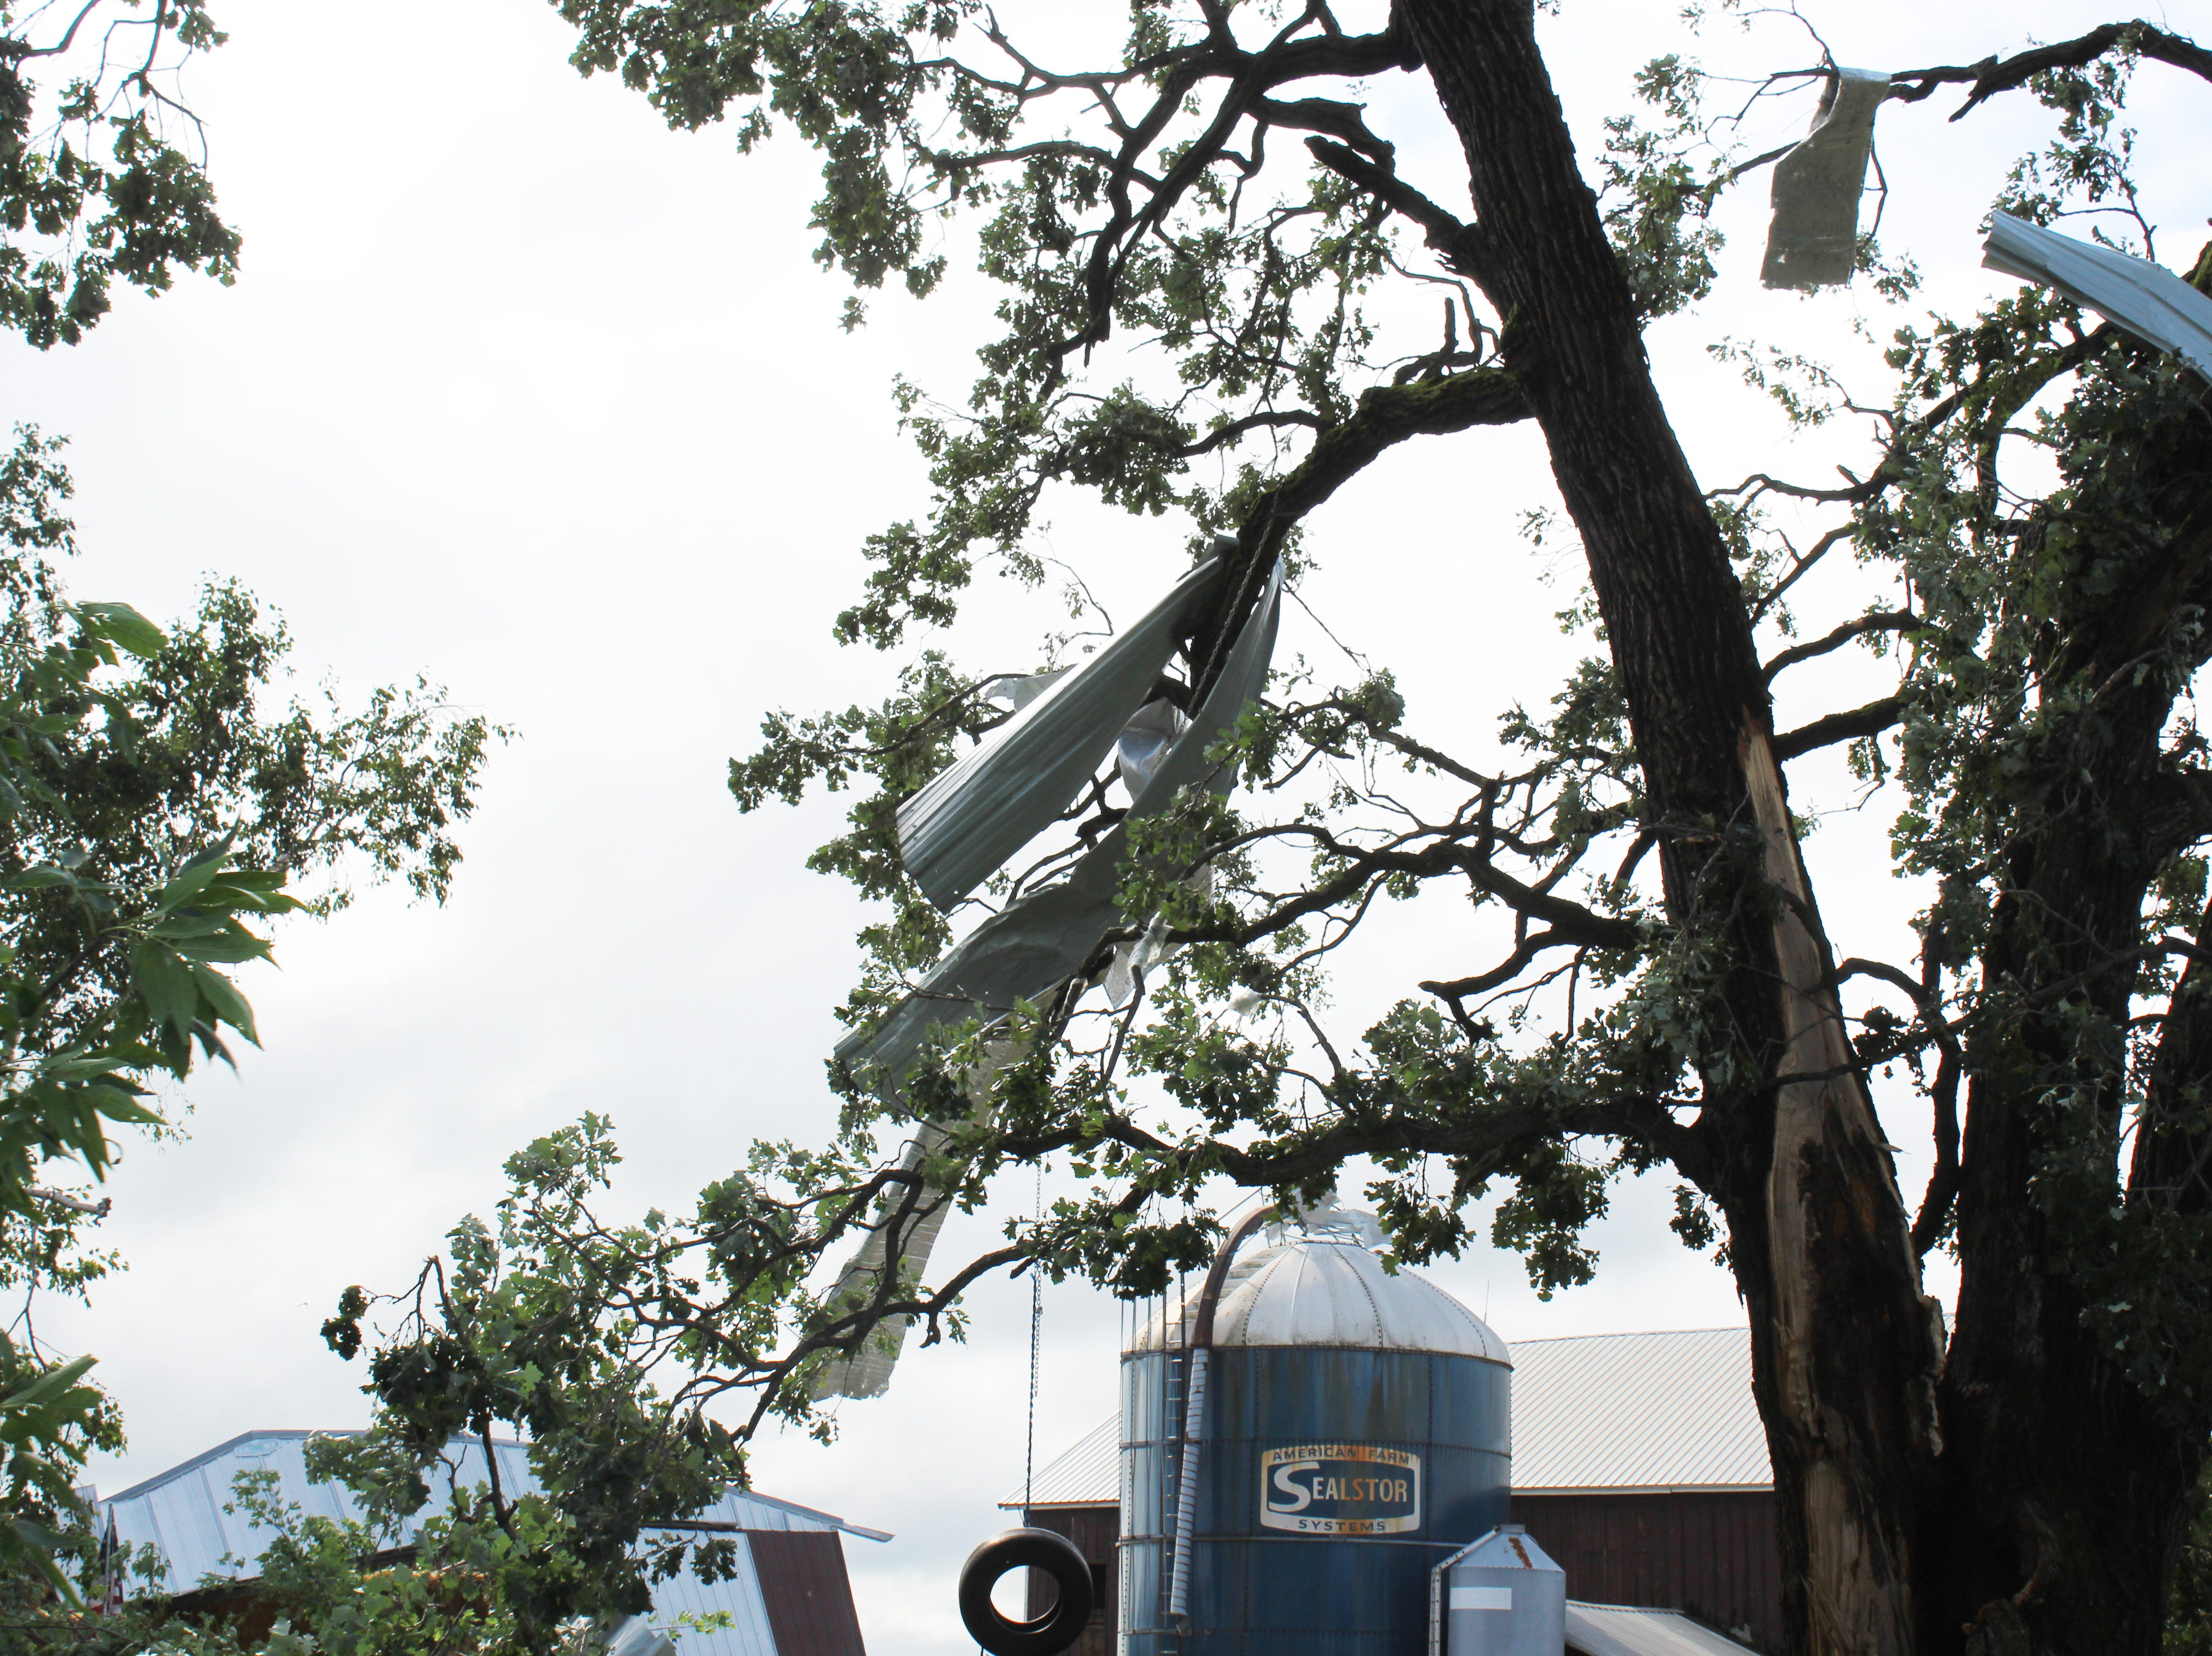 Sheet metal is twisted around tree branches at Pebble Knolls Dairy.